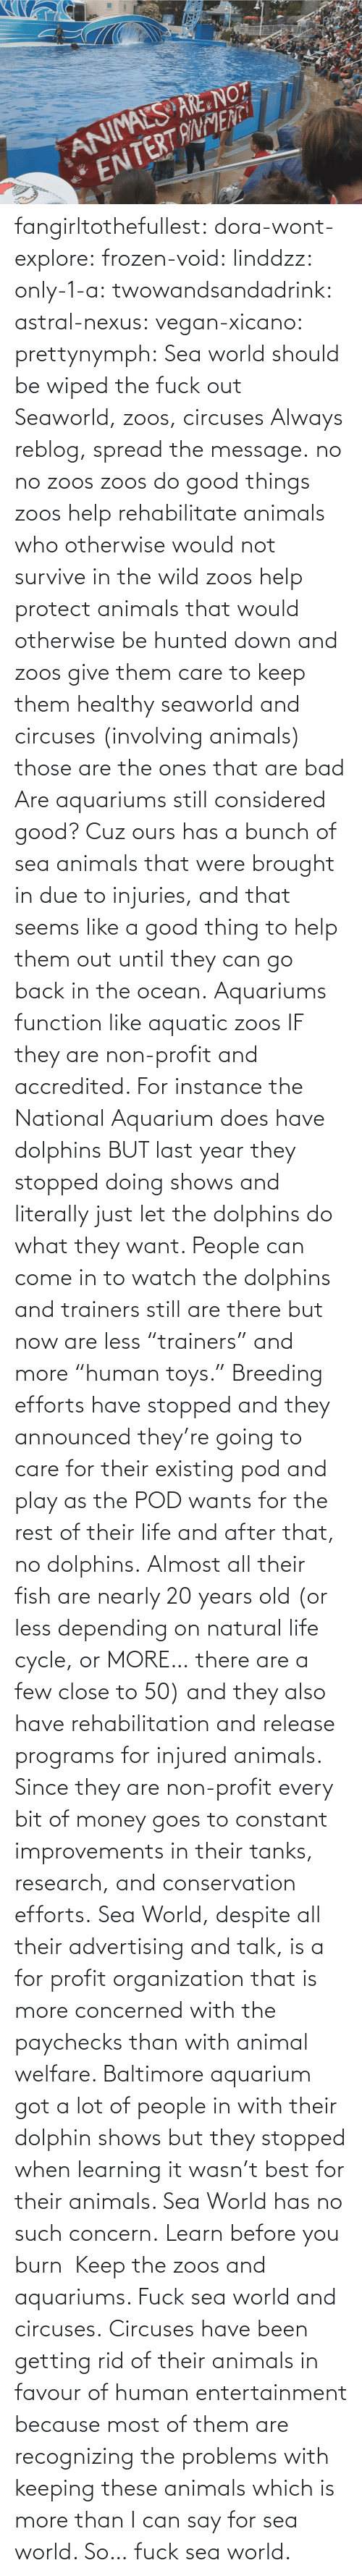 "Conservation: fangirltothefullest:  dora-wont-explore:  frozen-void:  linddzz:  only-1-a:  twowandsandadrink:  astral-nexus:  vegan-xicano:  prettynymph:  Sea world should be wiped the fuck out  Seaworld, zoos, circuses  Always reblog, spread the message.  no no zoos zoos do good things zoos help rehabilitate animals who otherwise would not survive in the wild zoos help protect animals that would otherwise be hunted down and zoos give them care to keep them healthy seaworld and circuses (involving animals) those are the ones that are bad  Are aquariums still considered good? Cuz ours has a bunch of sea animals that were brought in due to injuries, and that seems like a good thing to help them out until they can go back in the ocean.  Aquariums function like aquatic zoos IF they are non-profit and accredited. For instance the National Aquarium does have dolphins BUT last year they stopped doing shows and literally just let the dolphins do what they want. People can come in to watch the dolphins and trainers still are there but now are less ""trainers"" and more ""human toys."" Breeding efforts have stopped and they announced they're going to care for their existing pod and play as the POD wants for the rest of their life and after that, no dolphins. Almost all their fish are nearly 20 years old (or less depending on natural life cycle, or MORE… there are a few close to 50) and they also have rehabilitation and release programs for injured animals. Since they are non-profit every bit of money goes to constant improvements in their tanks, research, and conservation efforts. Sea World, despite all their advertising and talk, is a for profit organization that is more concerned with the paychecks than with animal welfare. Baltimore aquarium got a lot of people in with their dolphin shows but they stopped when learning it wasn't best for their animals. Sea World has no such concern.  Learn before you burn   Keep the zoos and aquariums. Fuck sea world and circuses.  Circuses have been getting rid of  their animals in favour of human entertainment because most of them are recognizing the problems with keeping these animals which is more than I can say for sea world. So… fuck sea world."